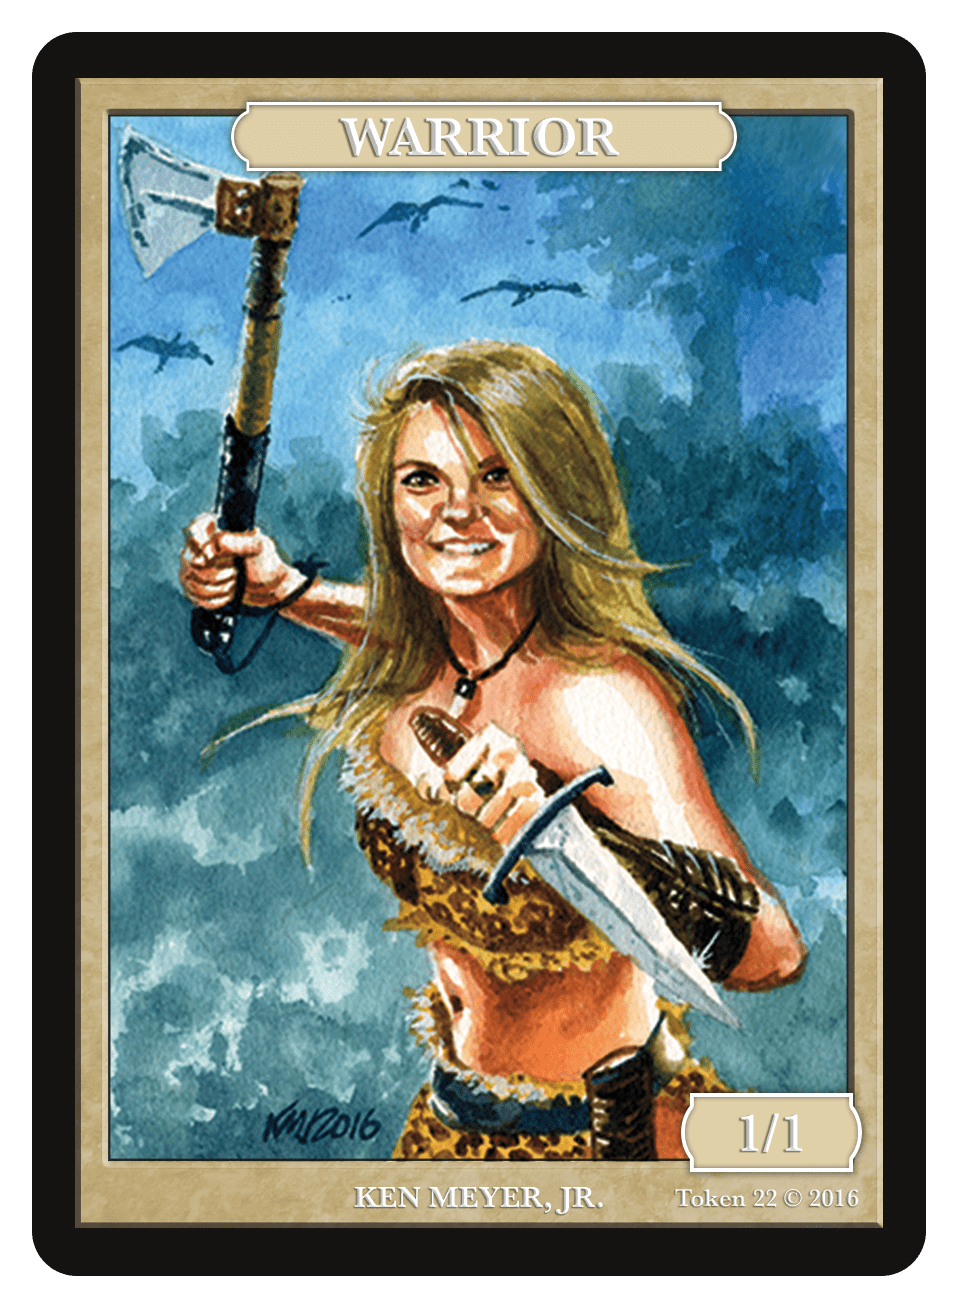 Warrior Token (1/1) by Ken Meyer Jr. - Token - Original Magic Art - Accessories for Magic the Gathering and other card games